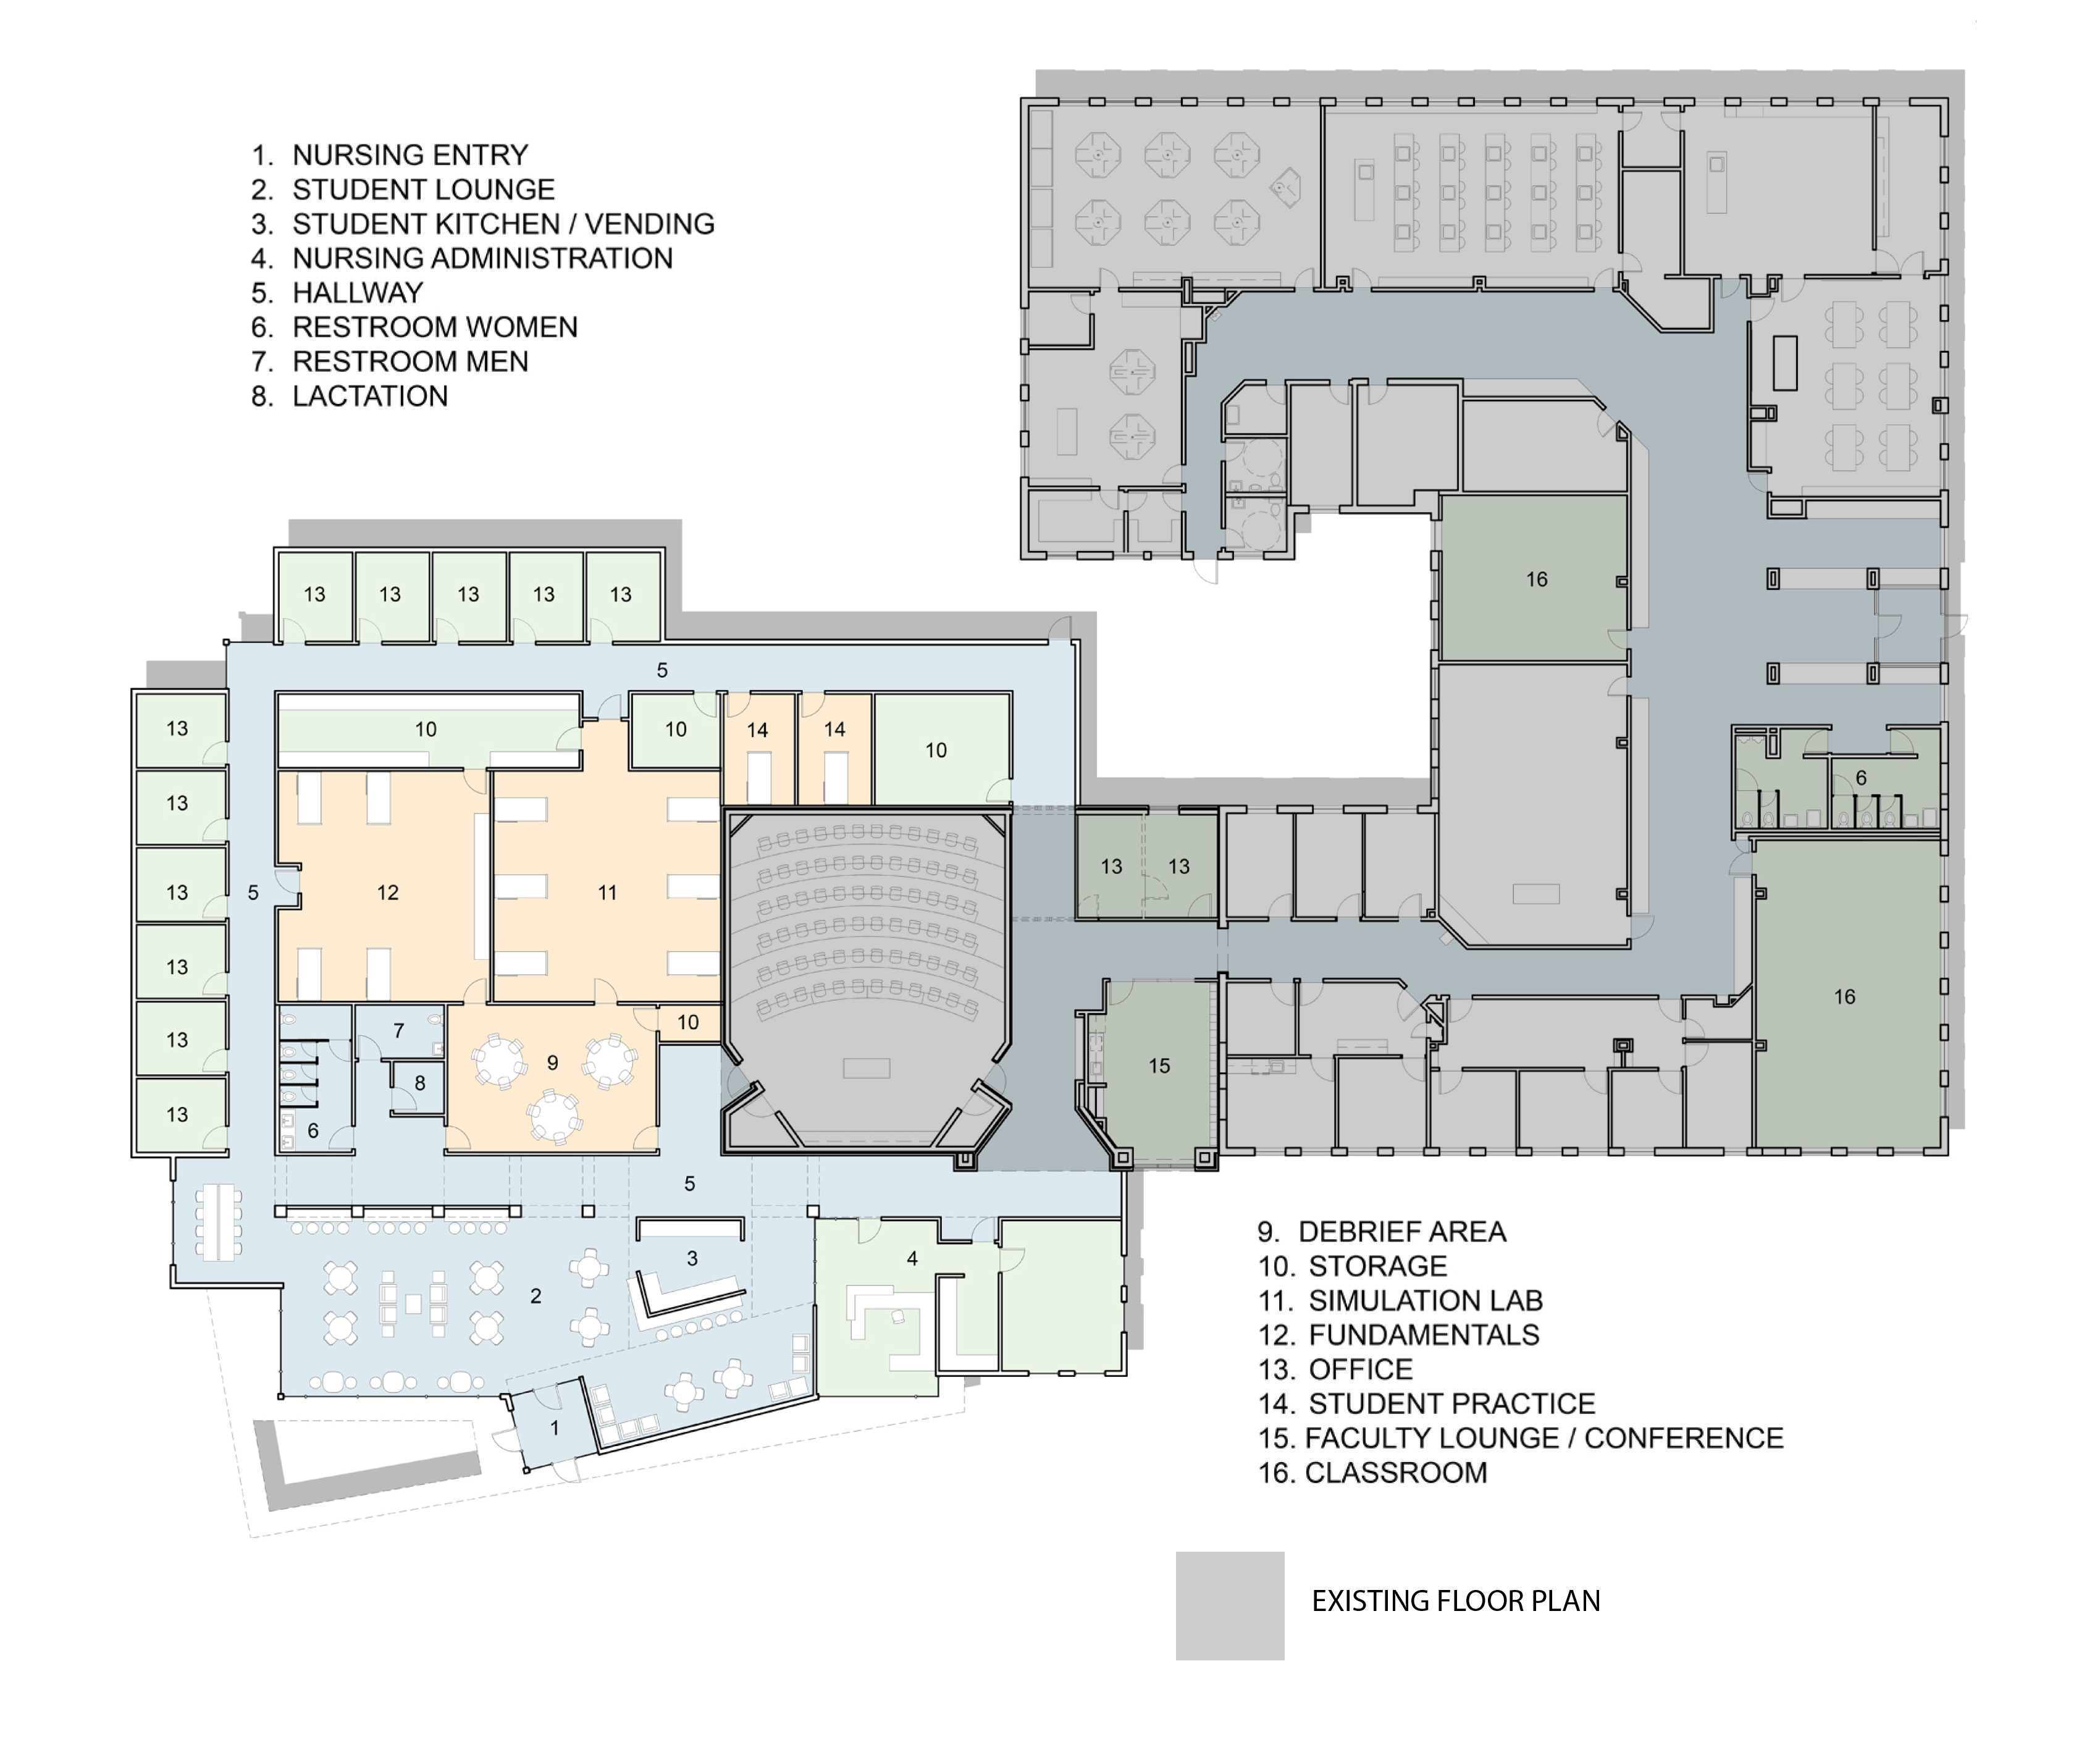 Potential floor plan for Bonnie Sowers Nursing Education Center